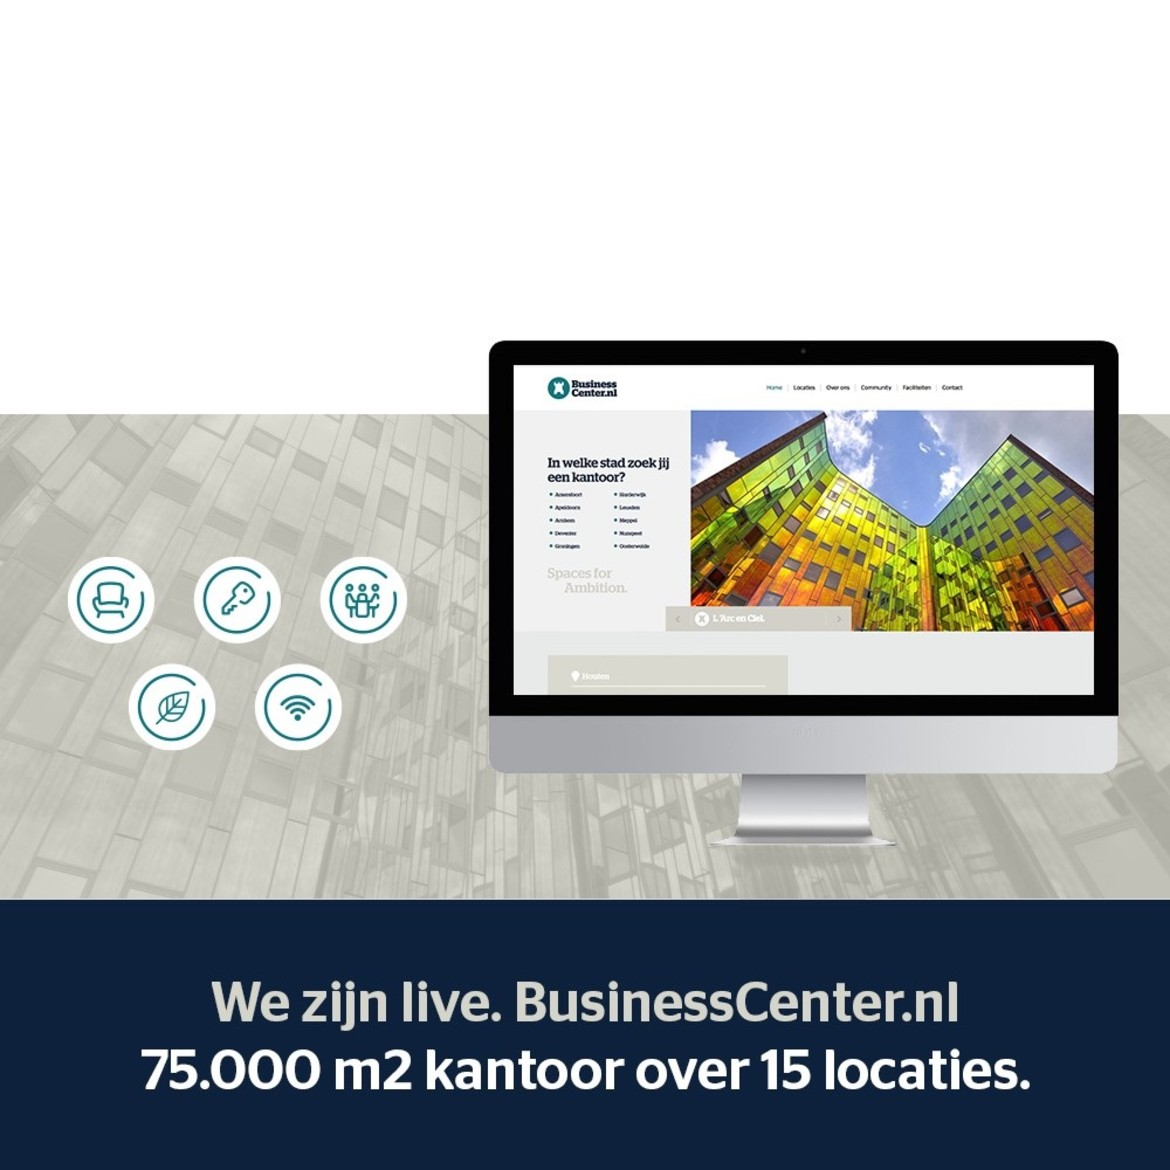 Brivec lanceert BusinessCenter.nl